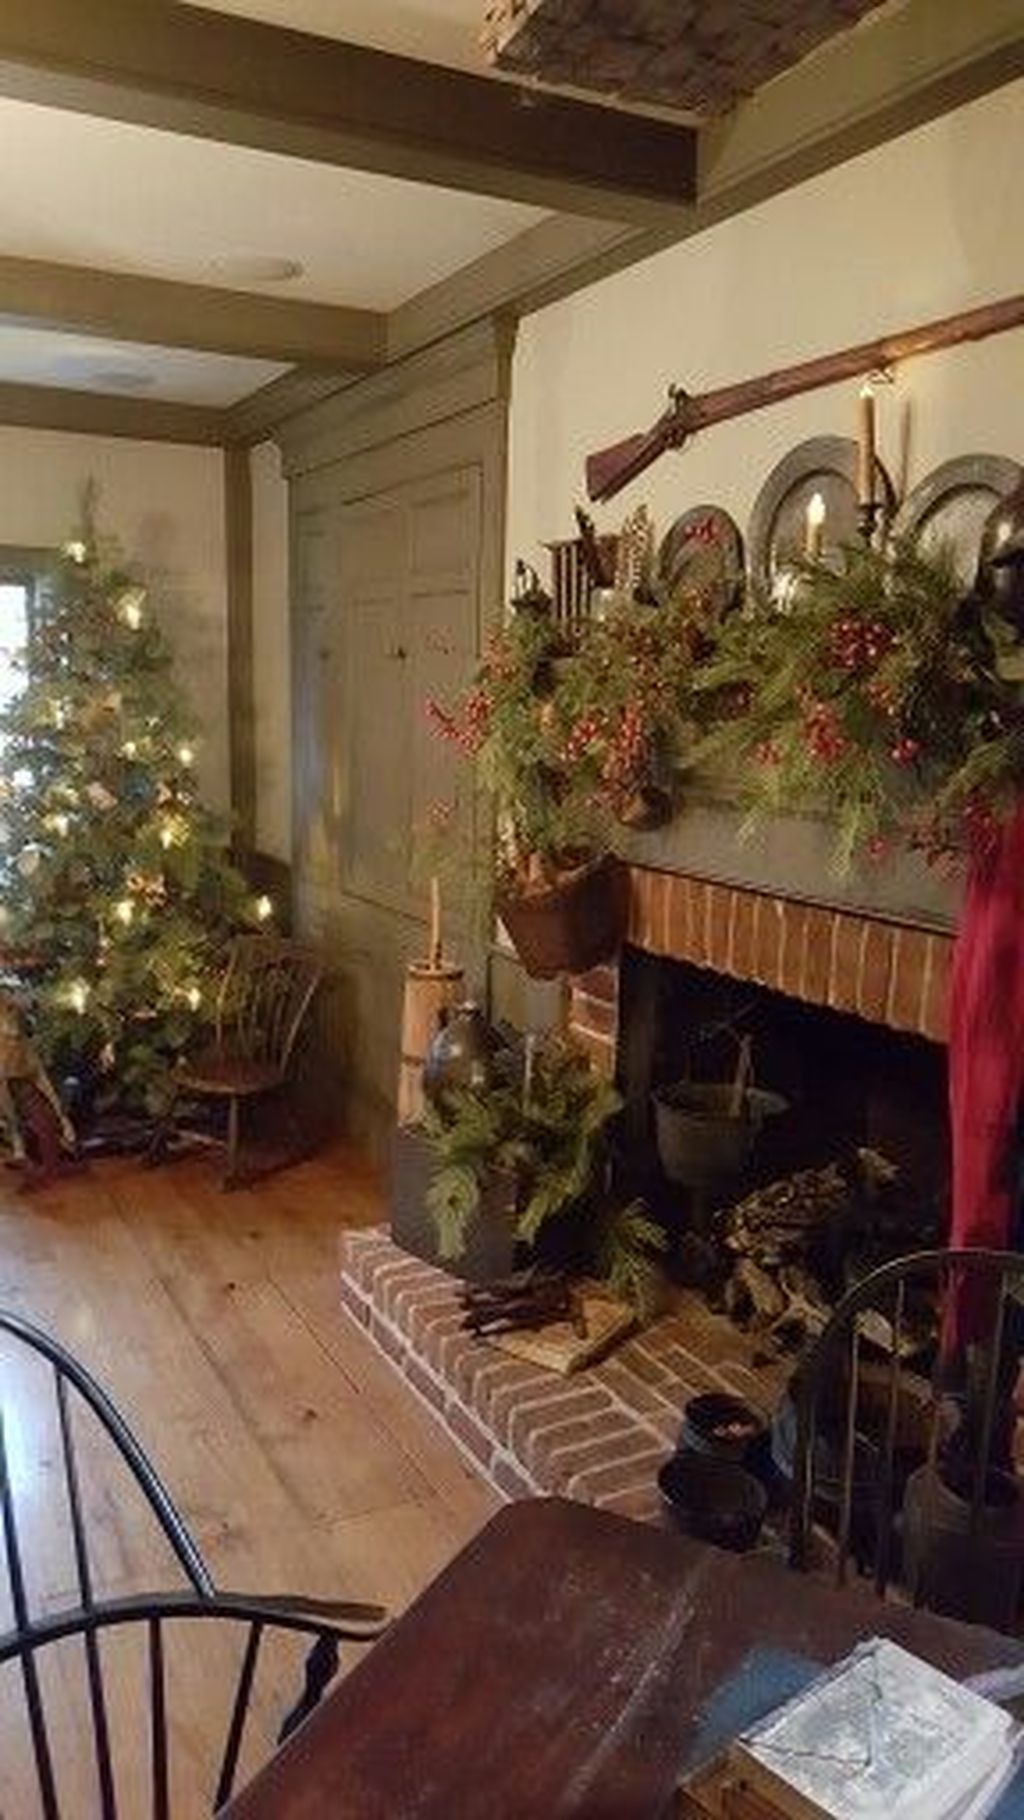 Inspiring Rustic Christmas Fireplace Ideas To Makes Your Home Warmer 94